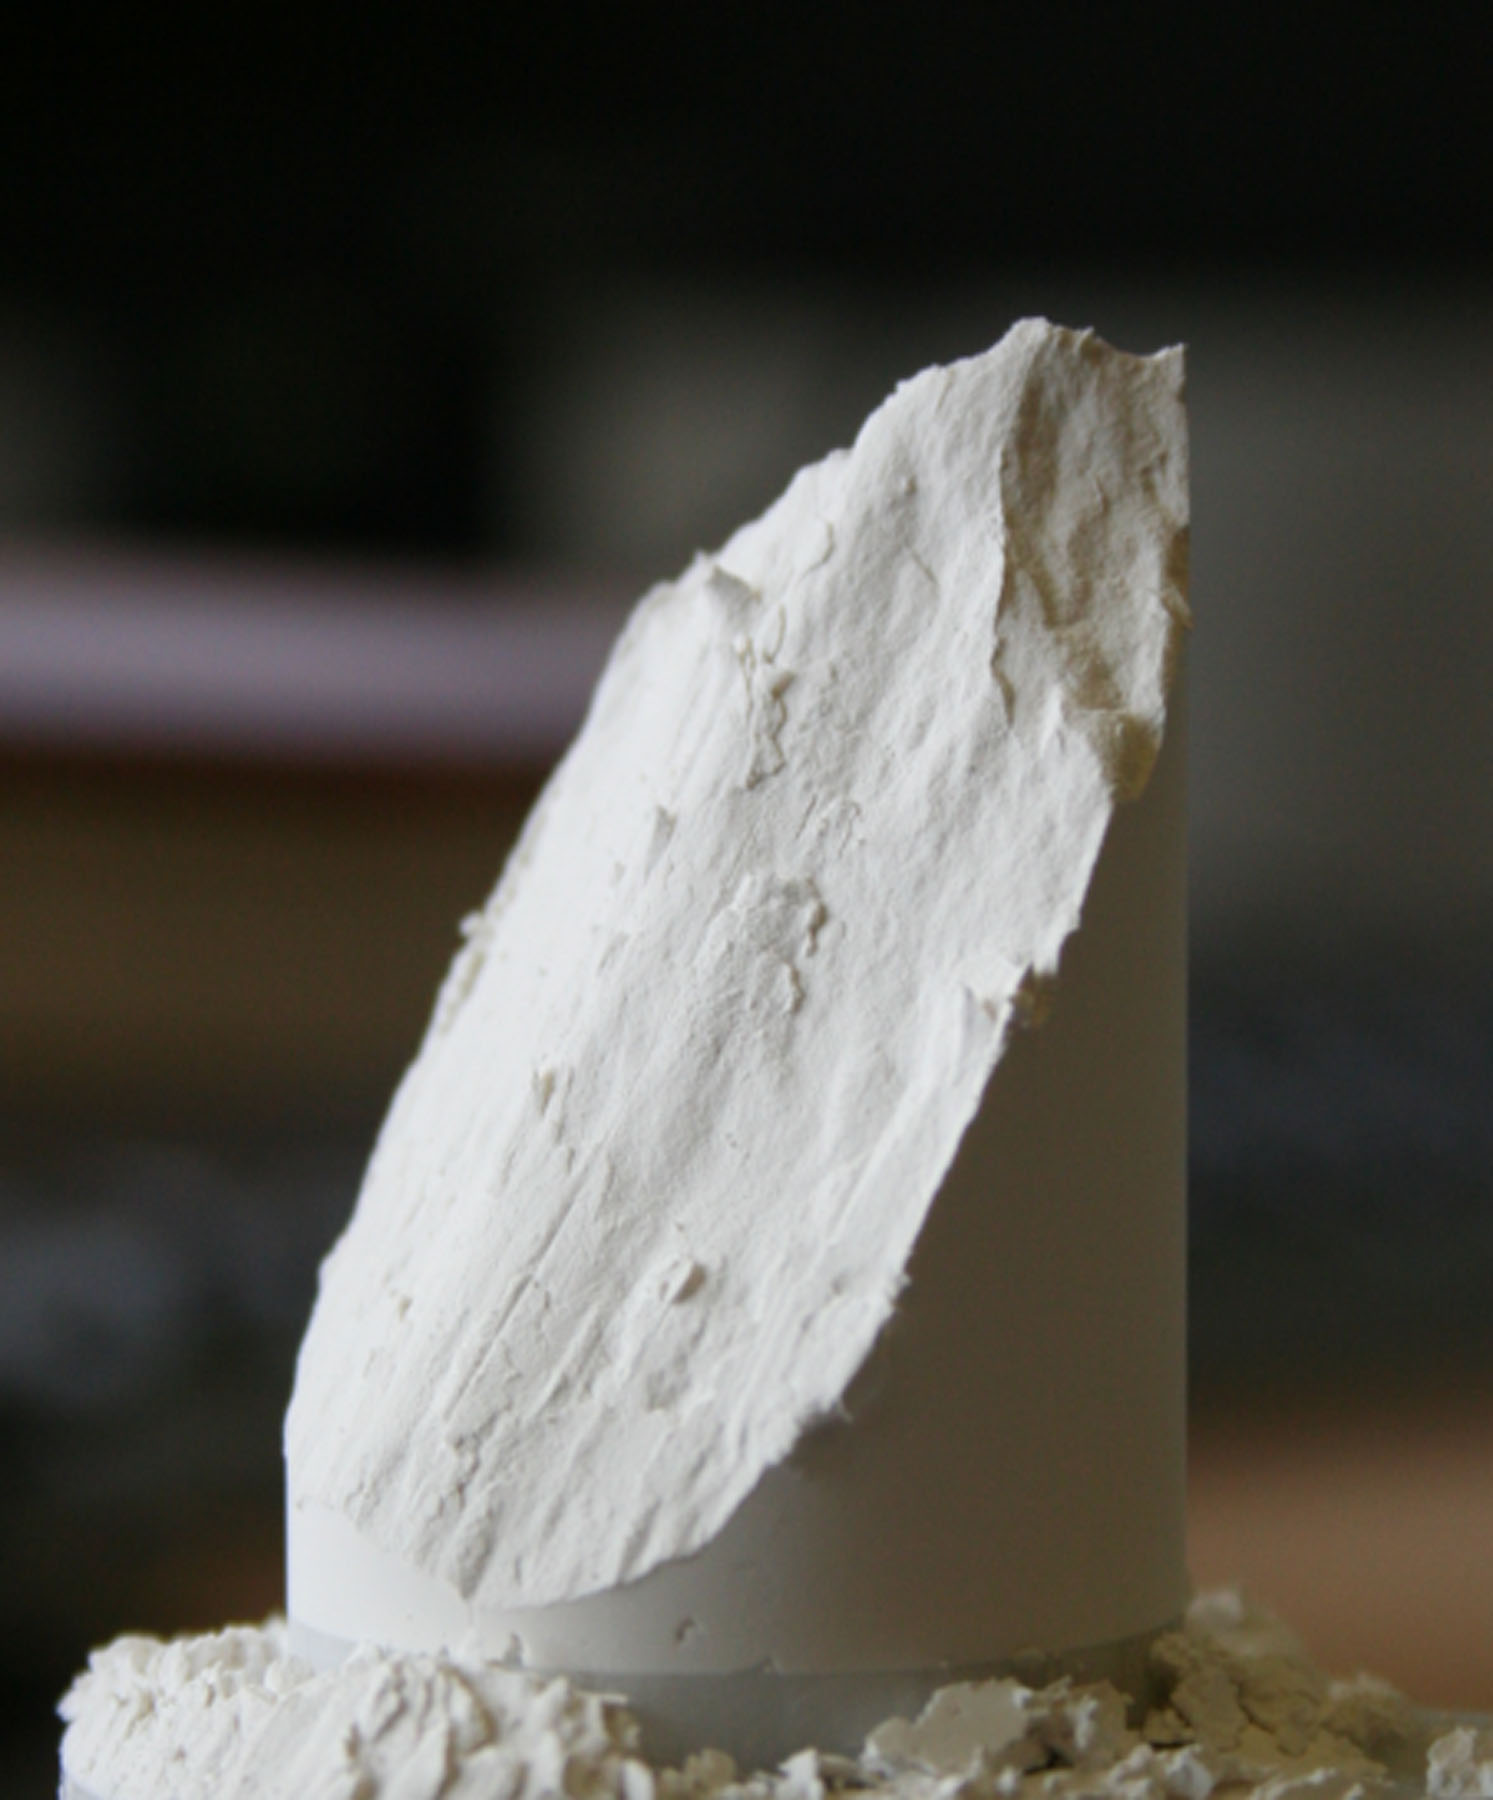 Powder after it has been failed in a uniaxial test